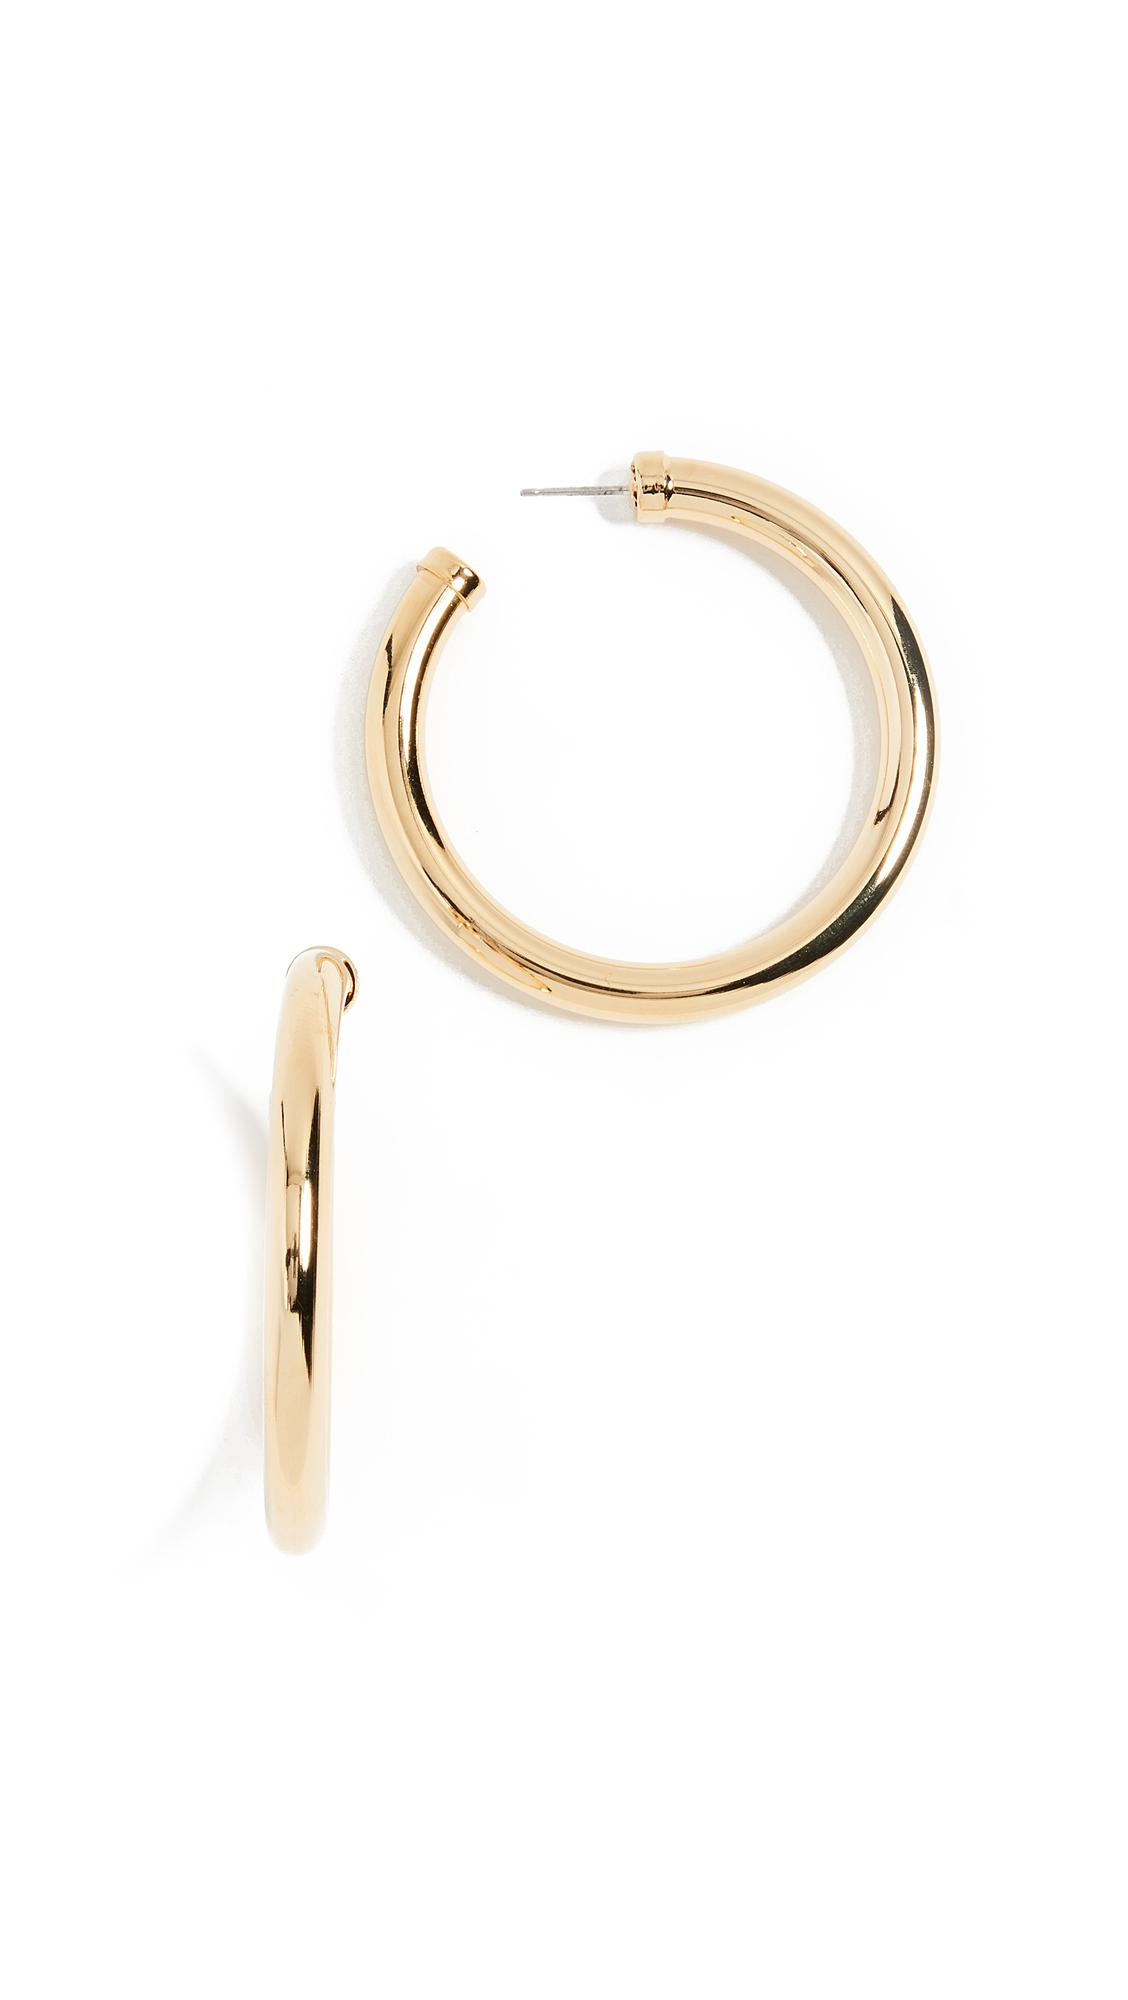 Kenneth Jay Lane Womens Tube Hoop Earrings ZnYc5L9eUd